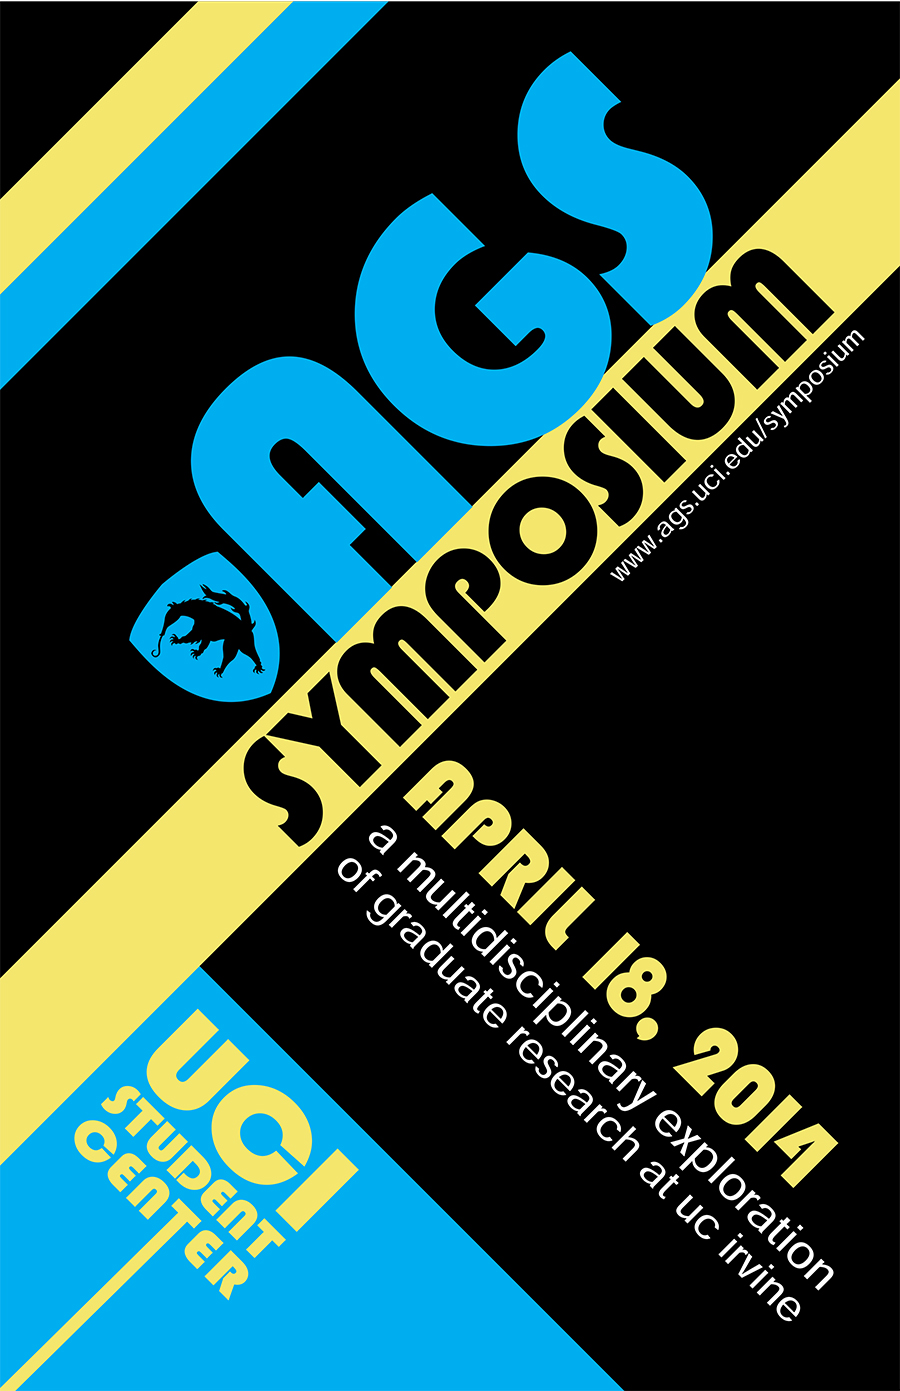 Poster design for symposium - Download